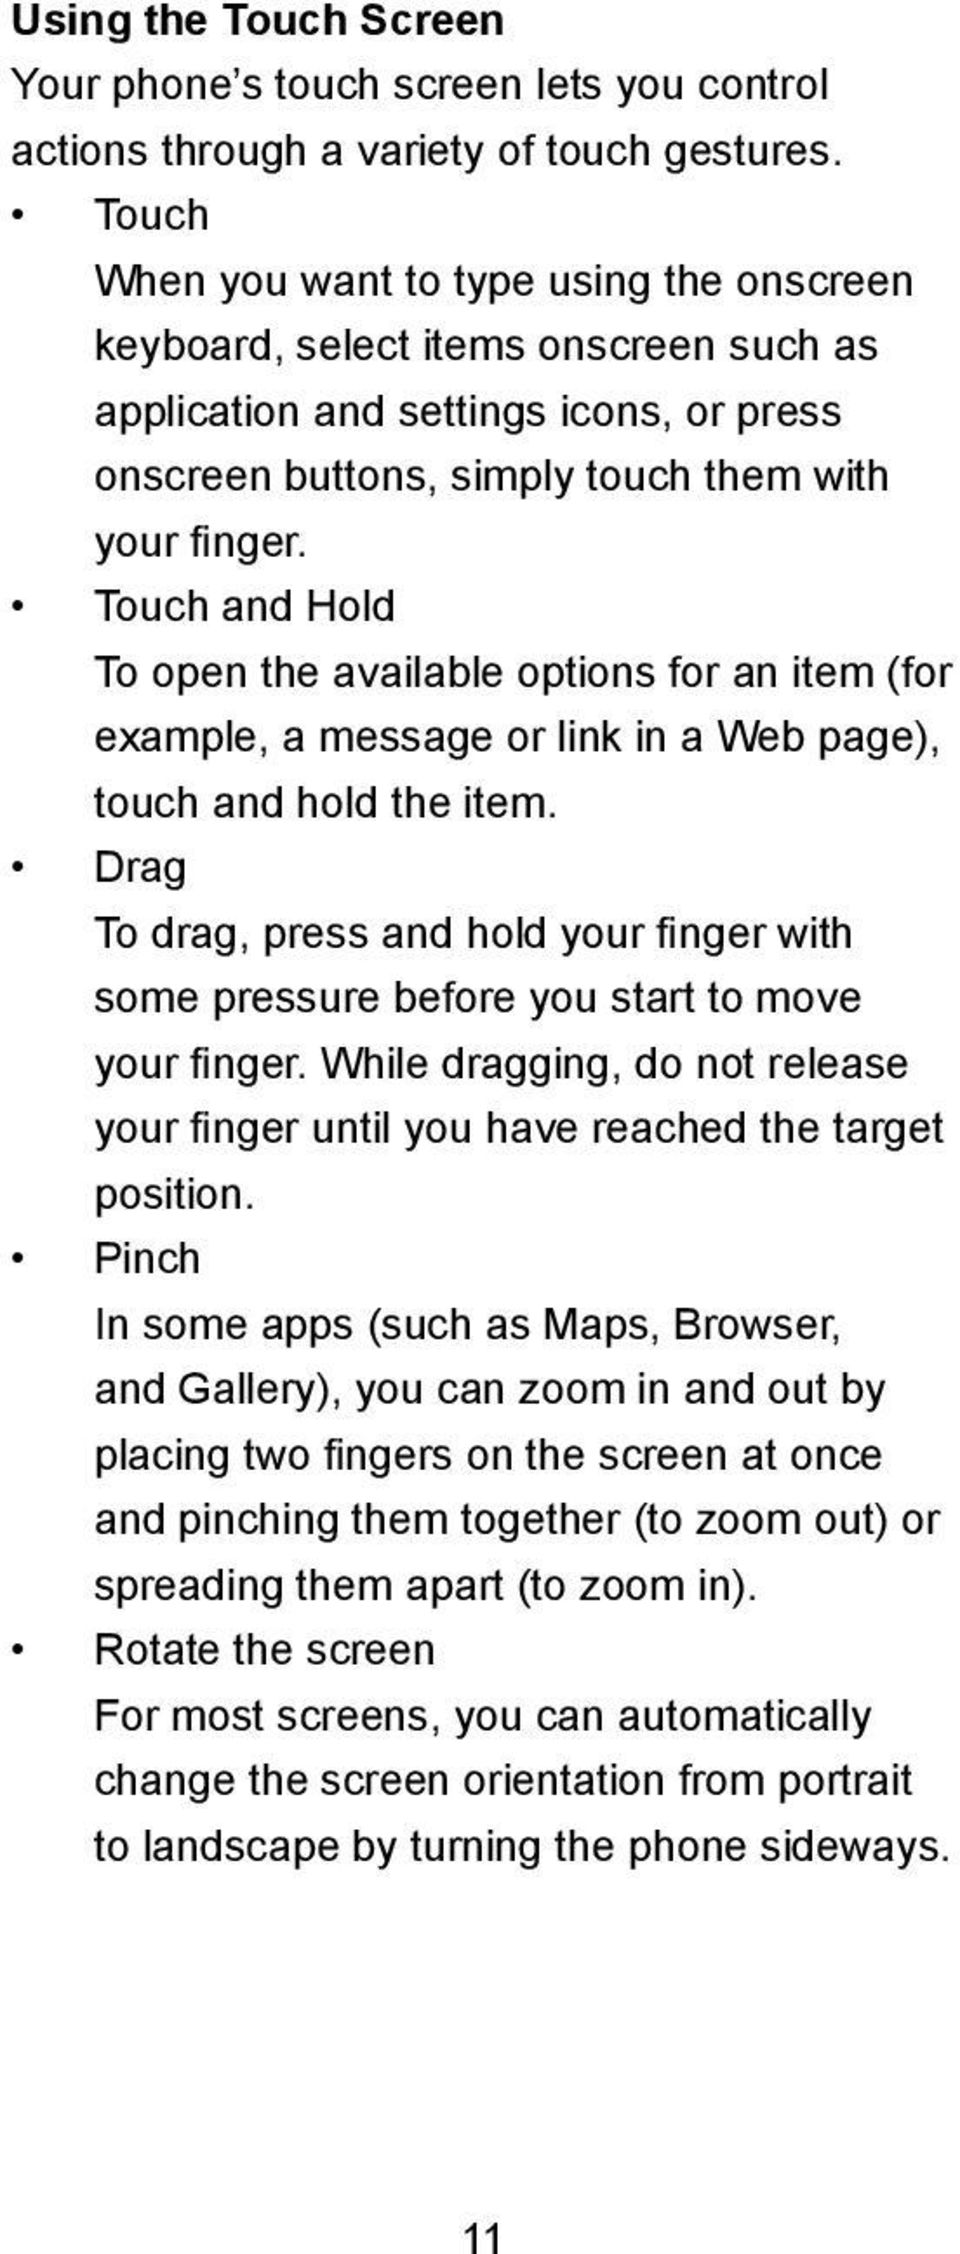 Touch and Hold To open the available options for an item (for example, a message or link in a Web page), touch and hold the item.